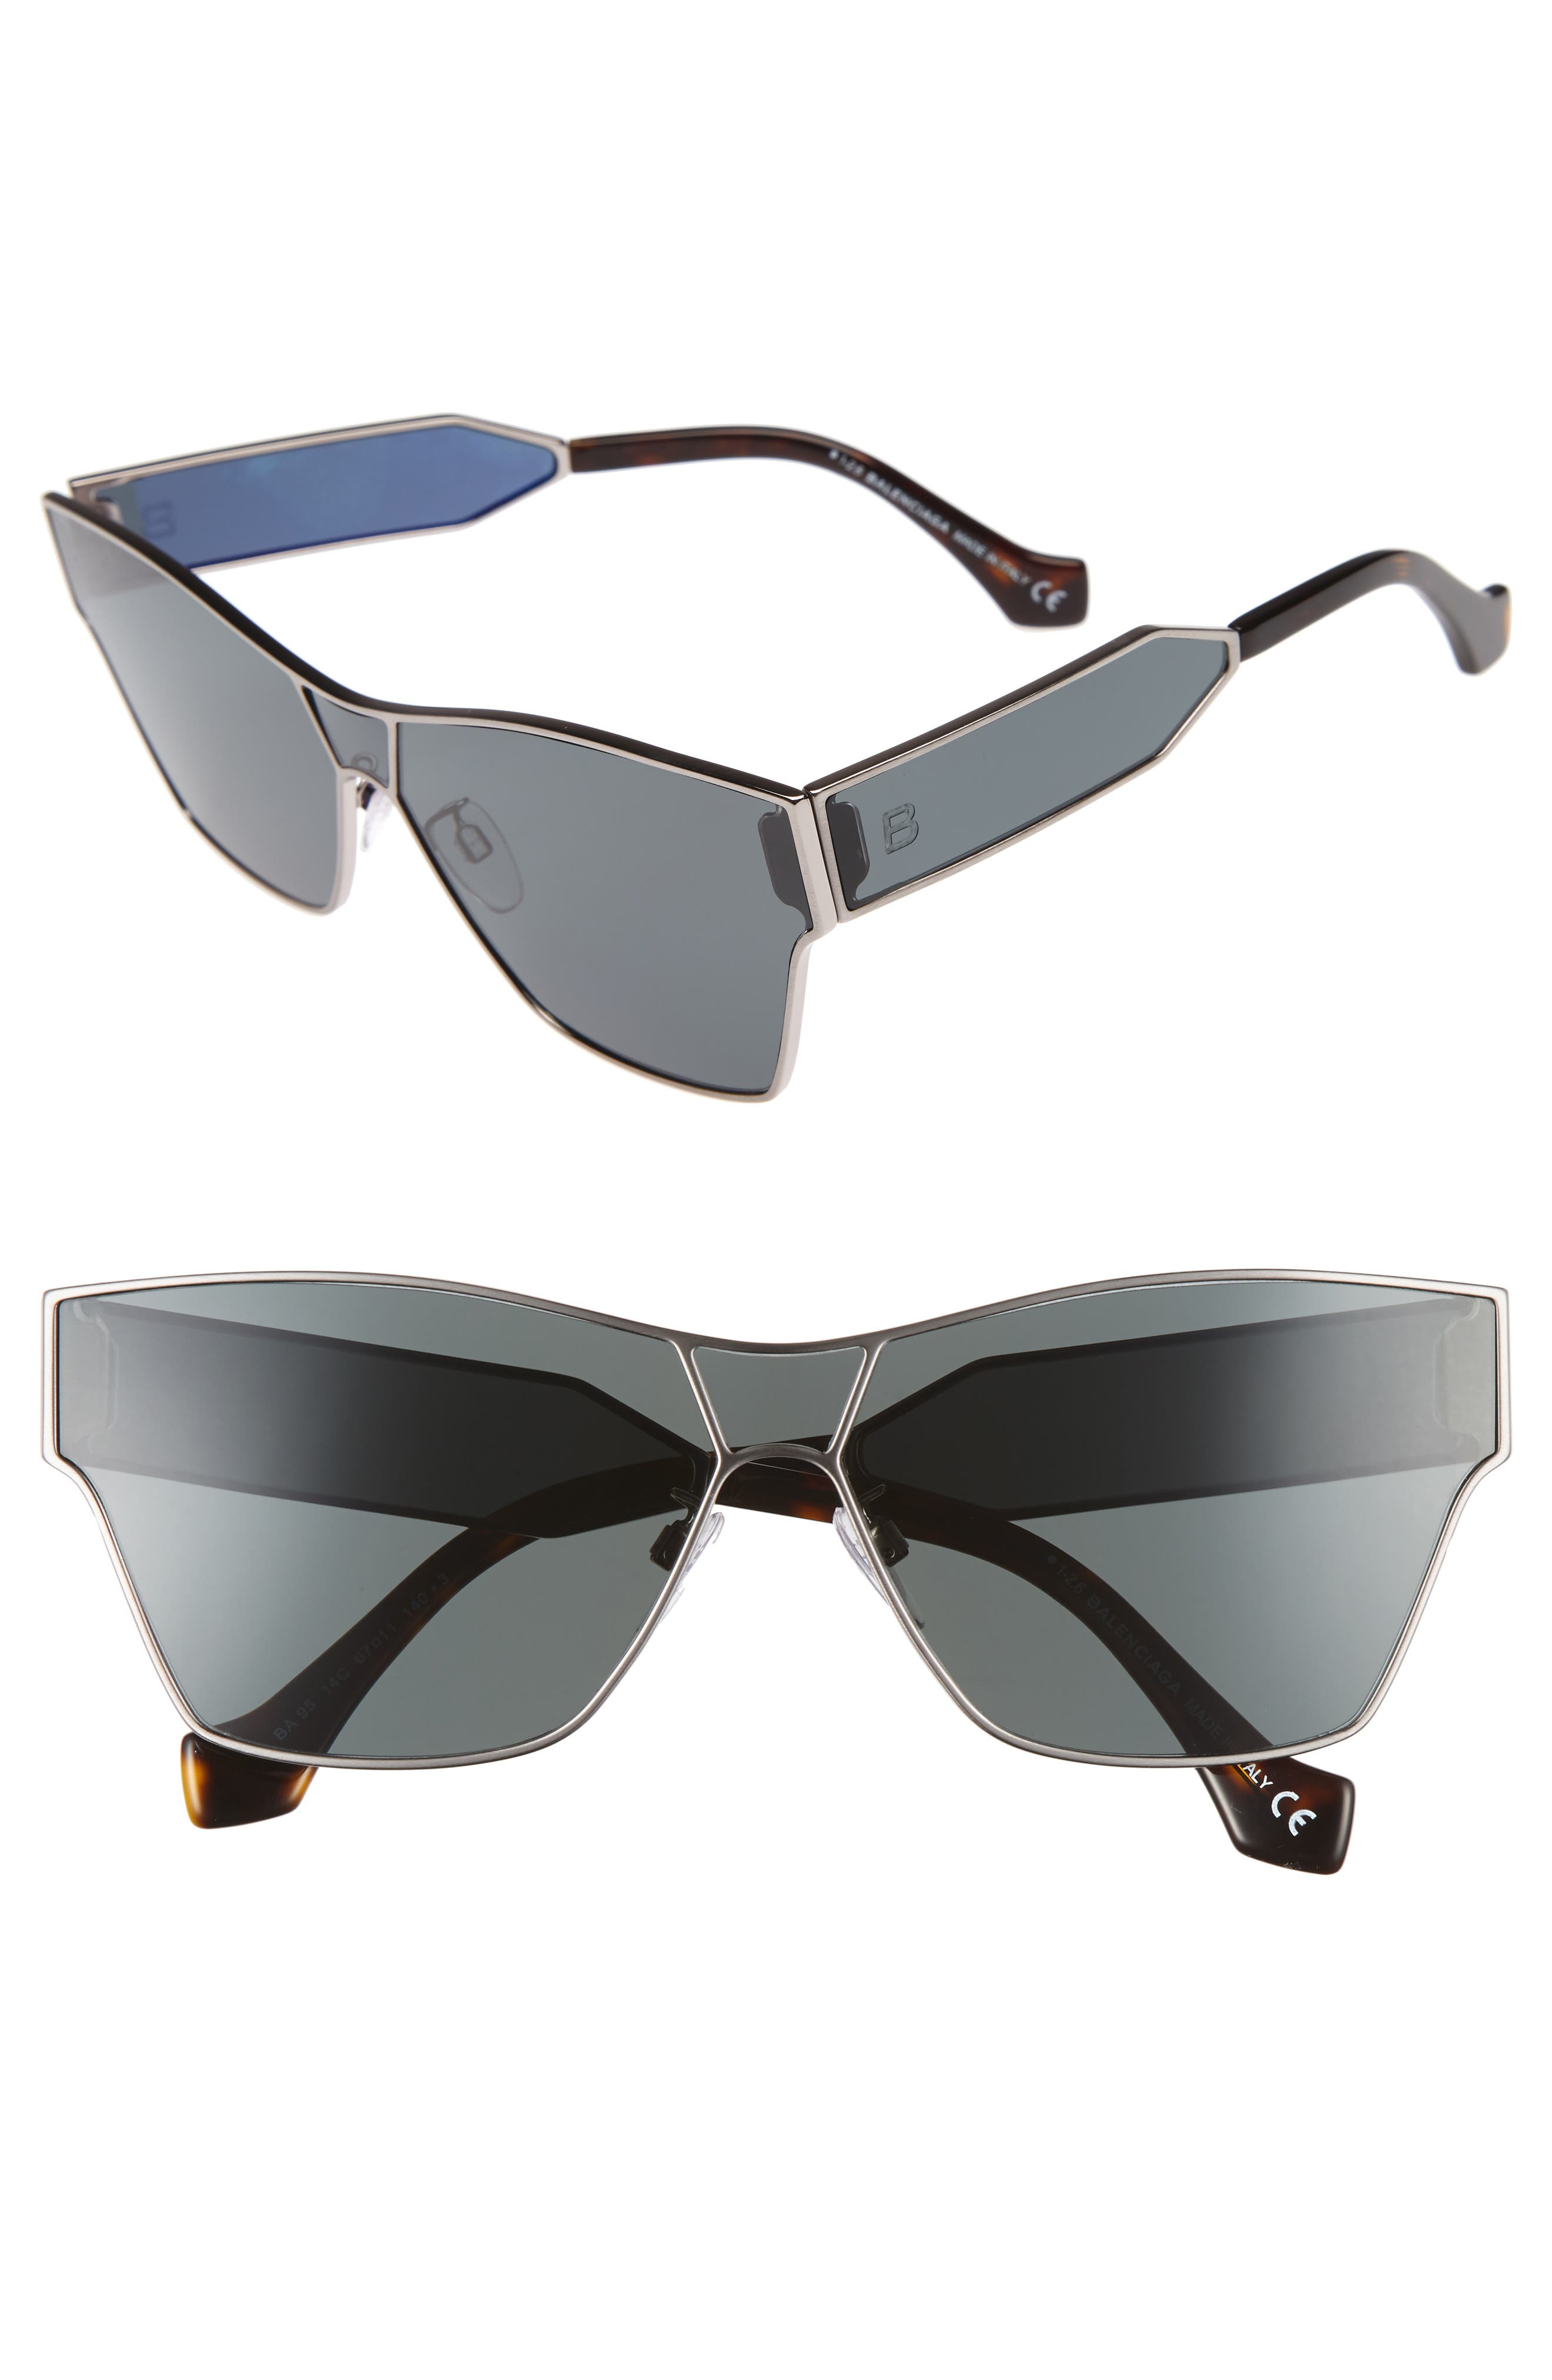 67mm Sunglasses,                             Main thumbnail 1, color,                             RUTHENIUM FRONT/ DARK HAVANA